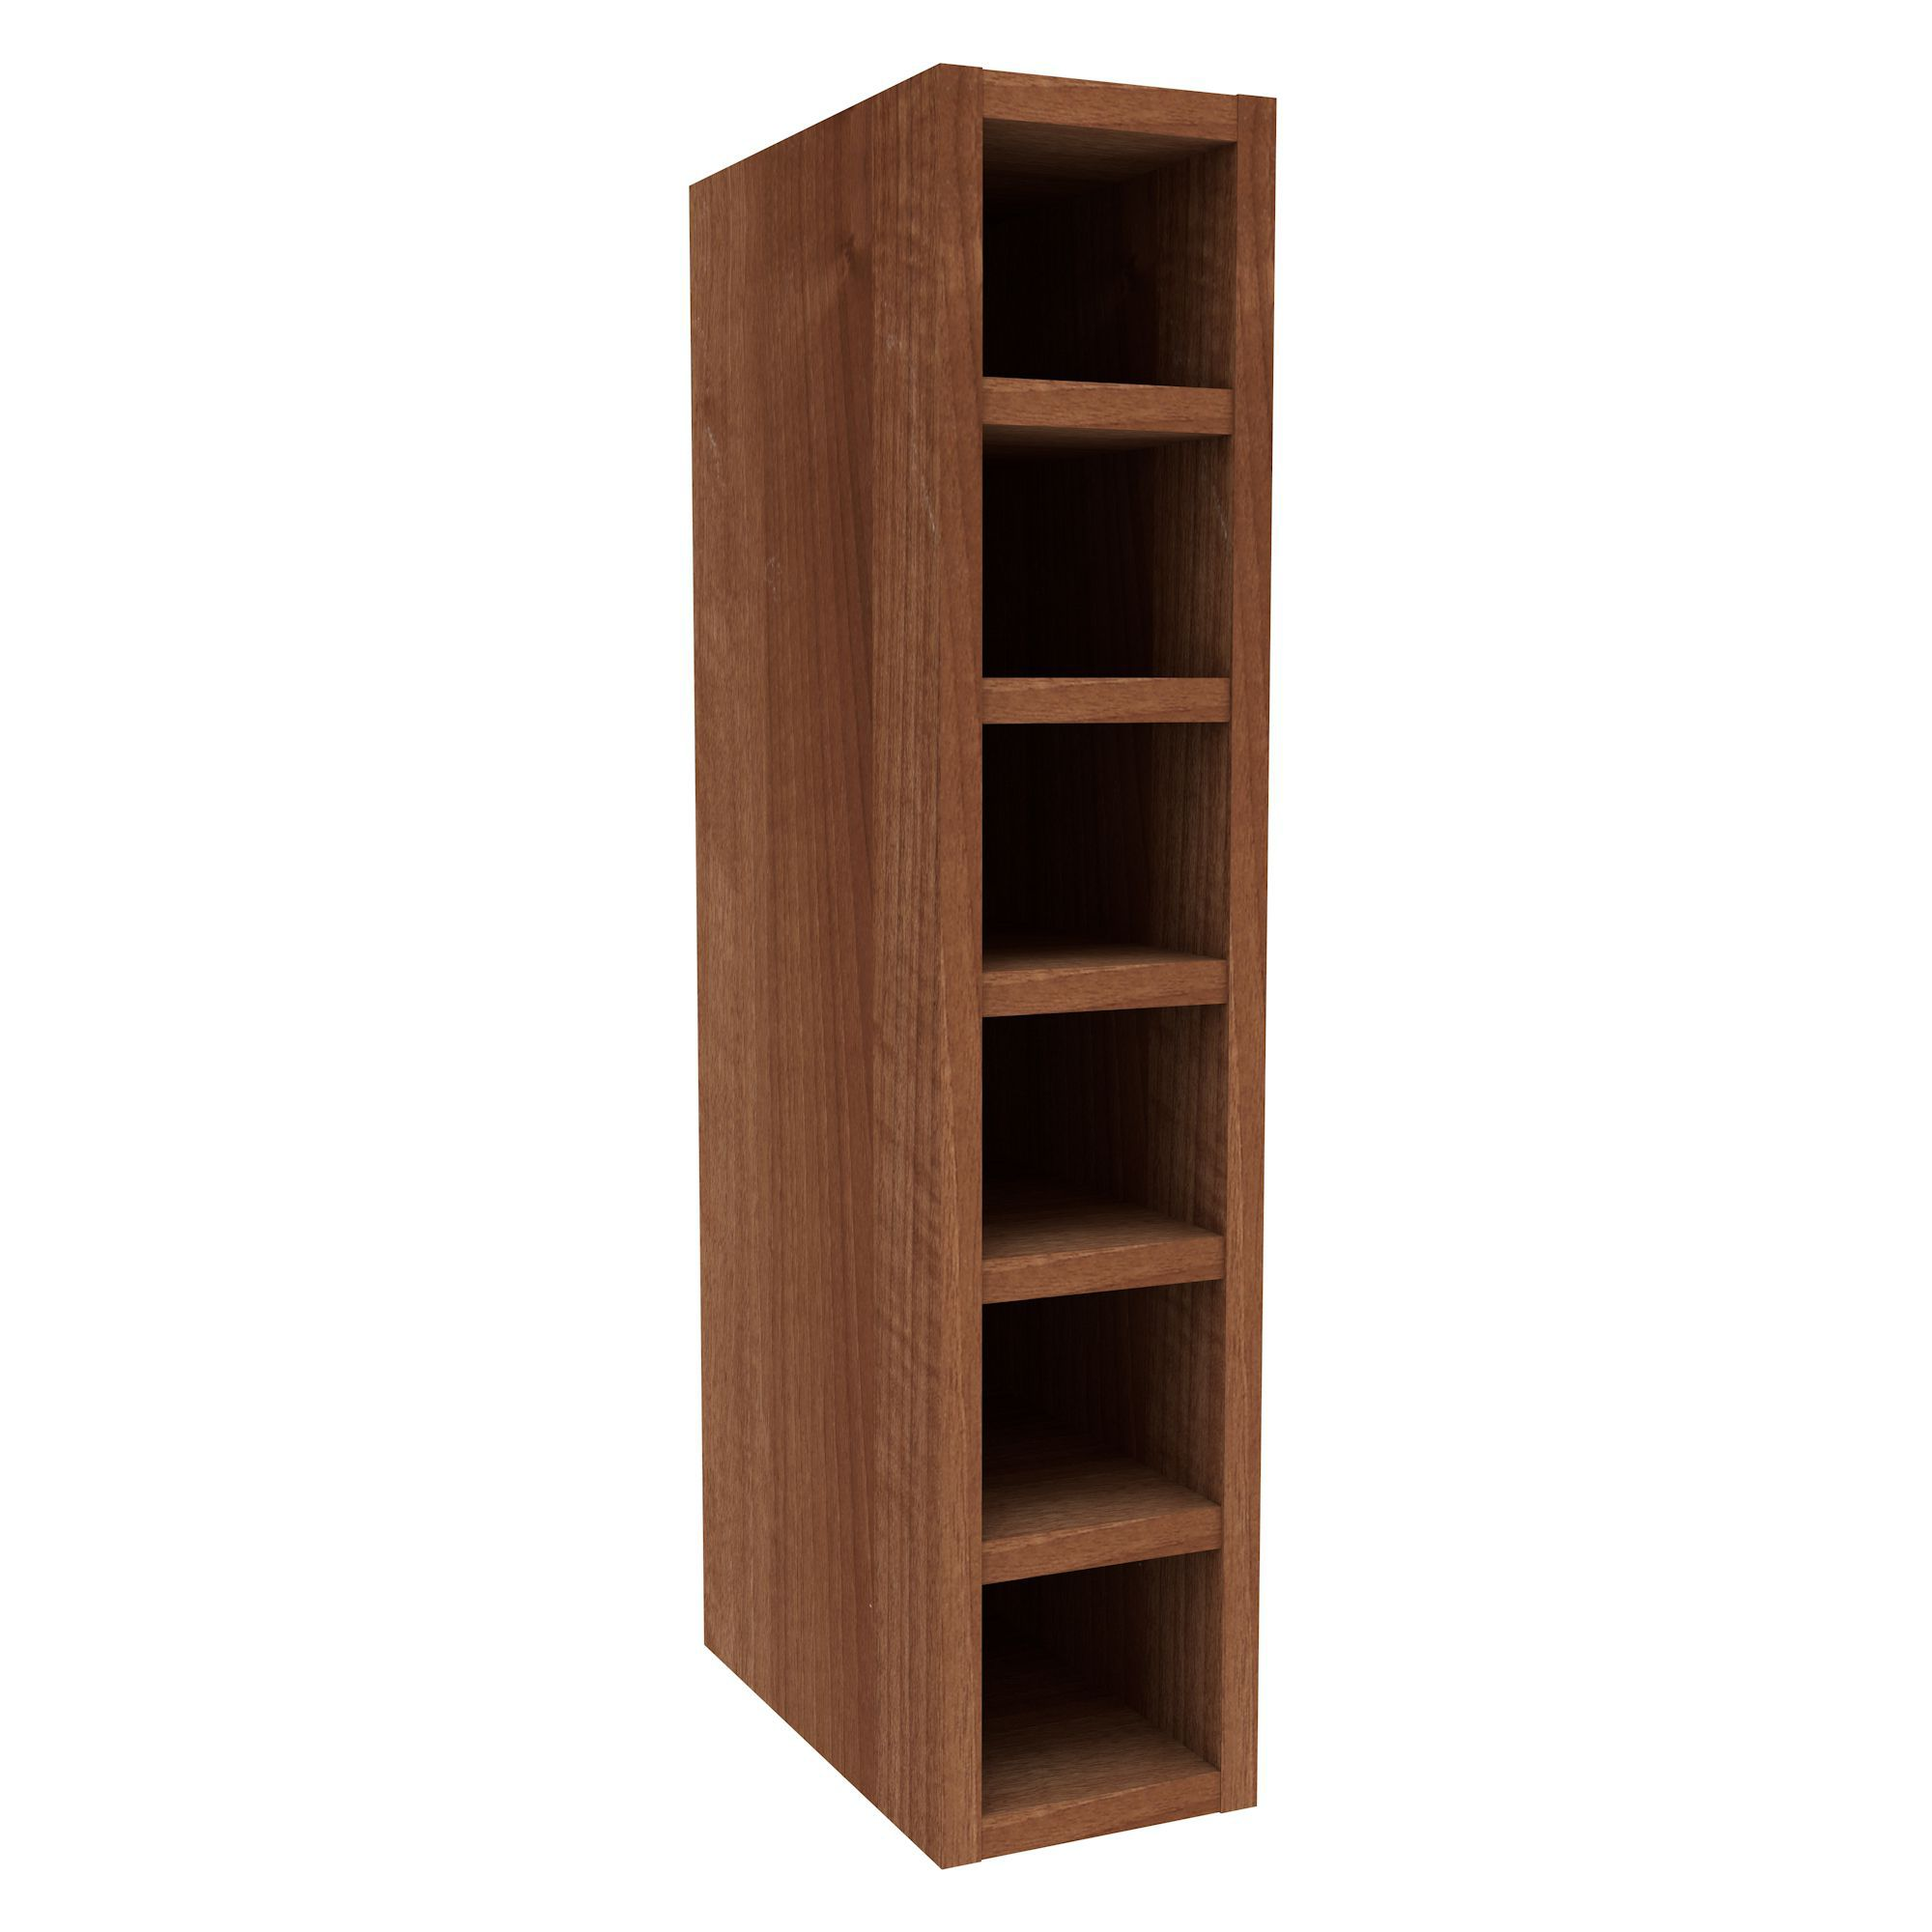 Oak Effect Kitchen Cabinets: Cooke & Lewis Walnut Effect Wine Rack Wall Cabinet (W